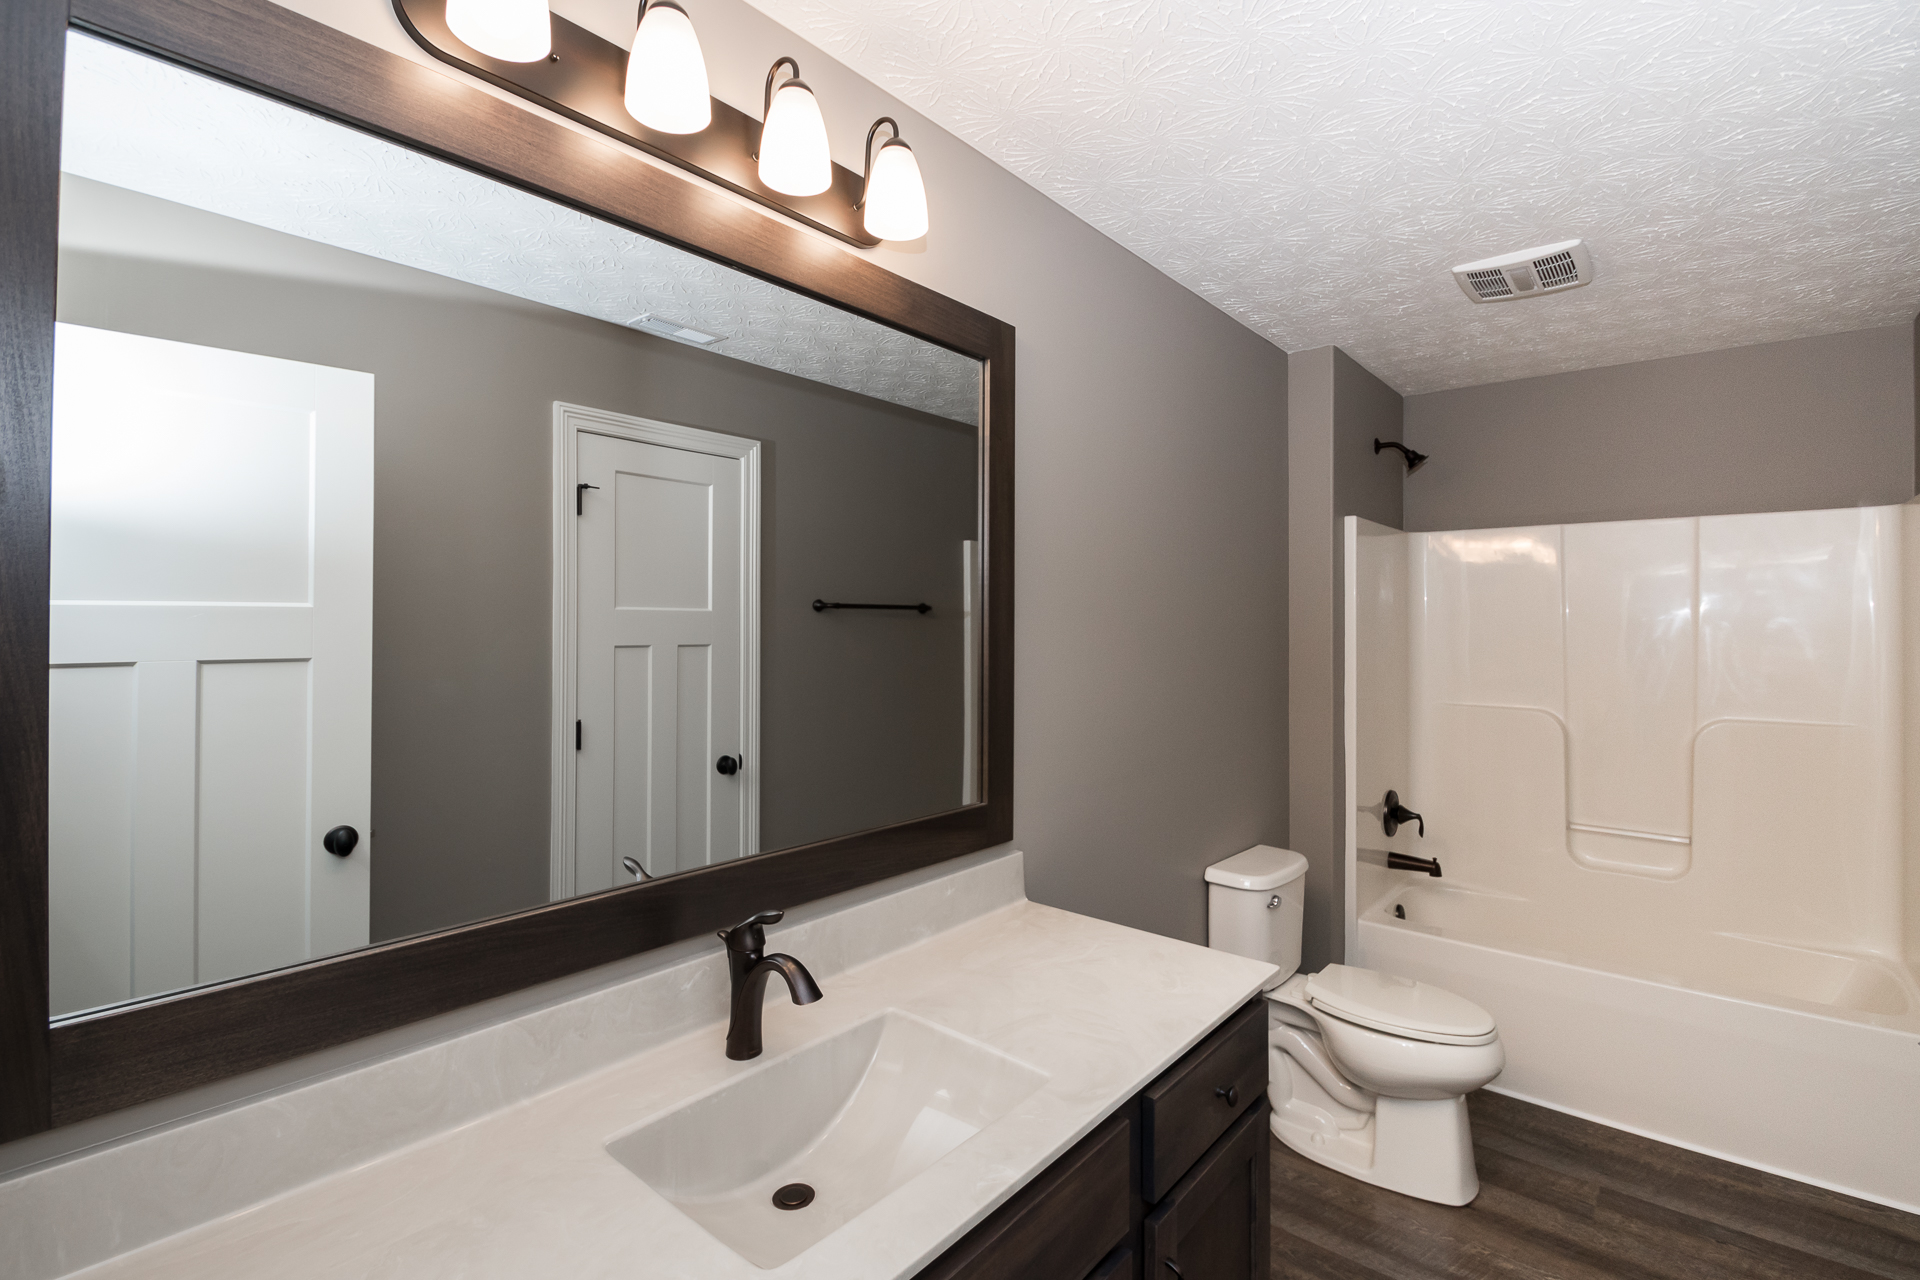 Cabinets: Camden Rustic Birch Stone Tops: one-piece cultured marble, #95 white on sandbar, wave bowl, Moen Eva 6400 oil rubbed bronze faucet